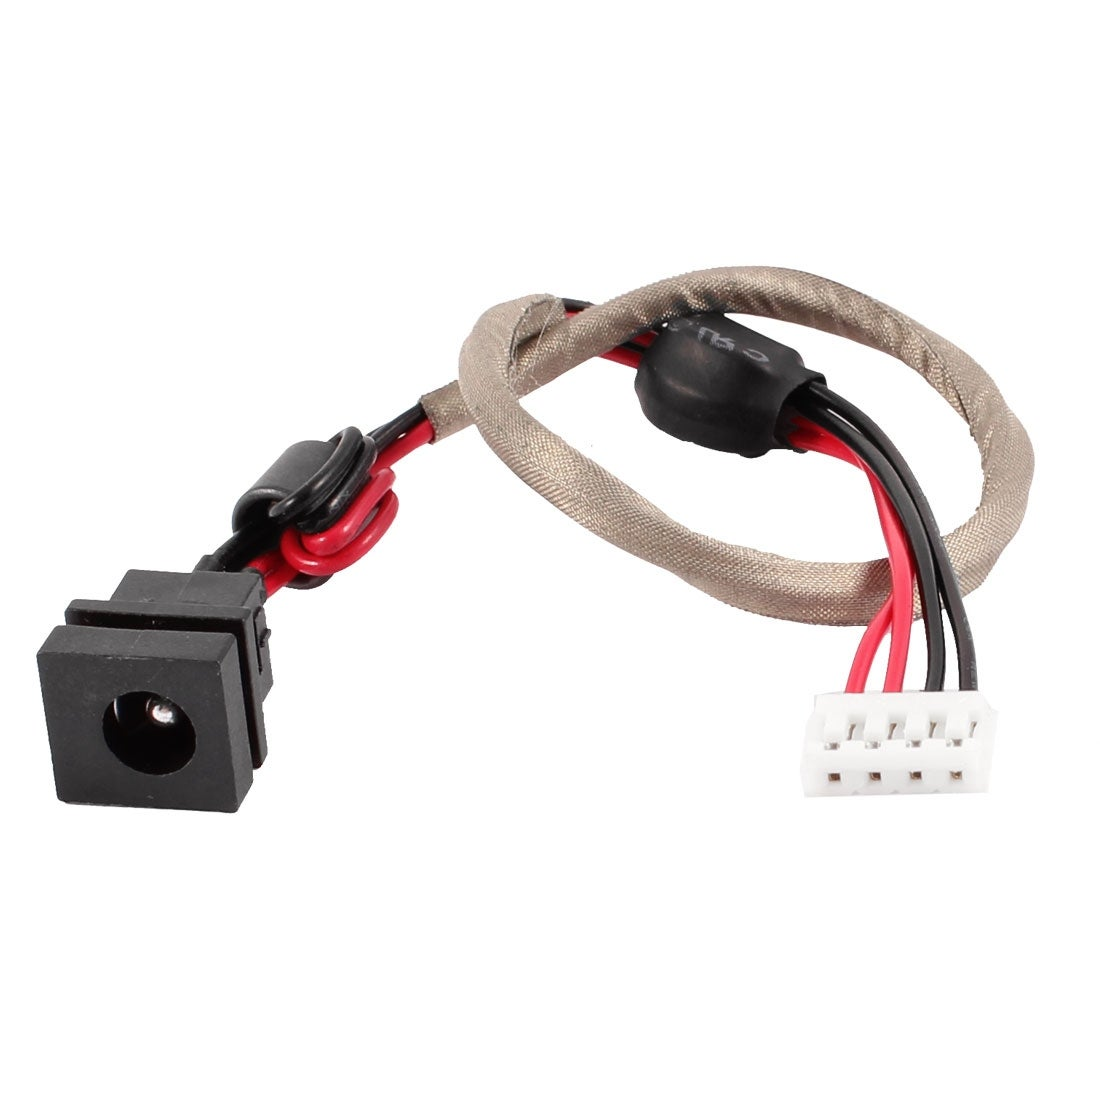 Replacement Pj146 Dc Power Jack Harness Wire Cable For Lenovo Wiring Ideapad Y430 G530 Free Shipping On Orders Over 45 24260782